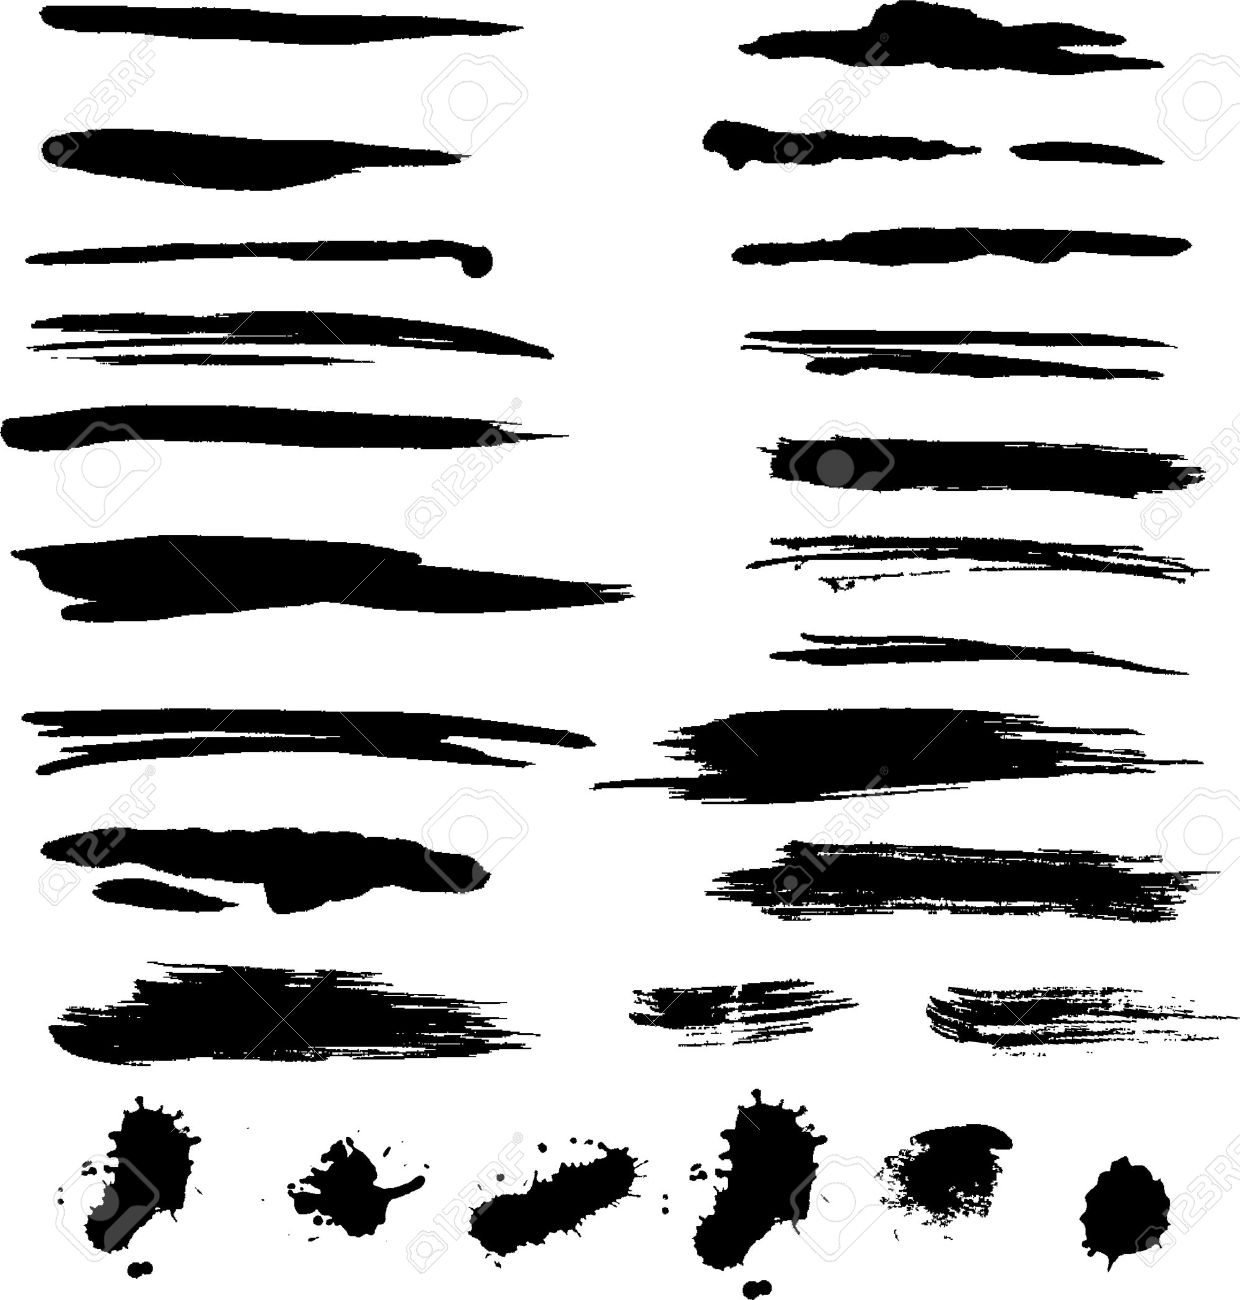 Grunge Brush Strokes Royalty Free Cliparts, Vectors, And Stock ...